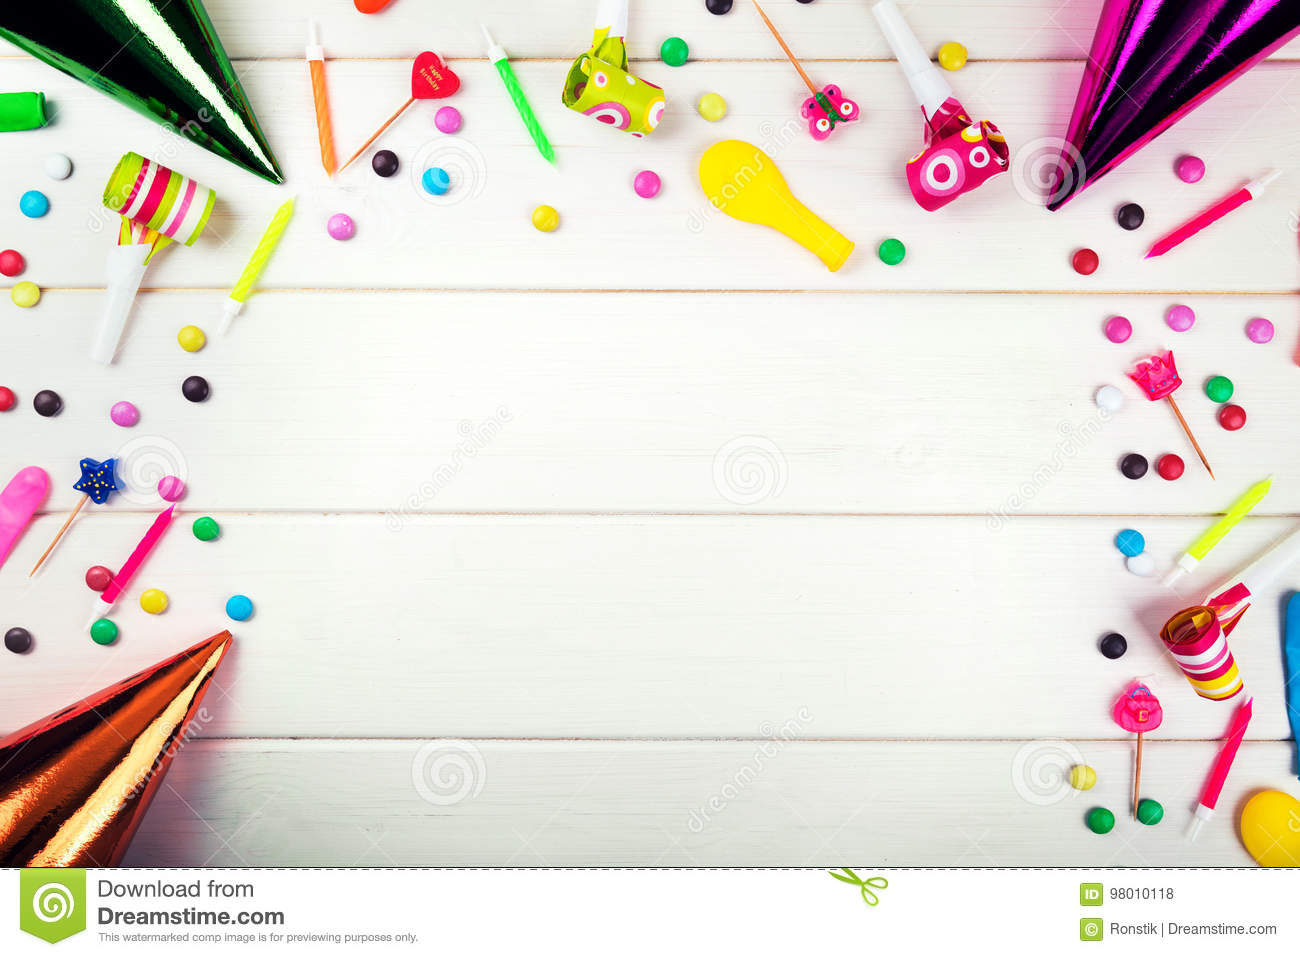 birthday party items and decorations on white wood background